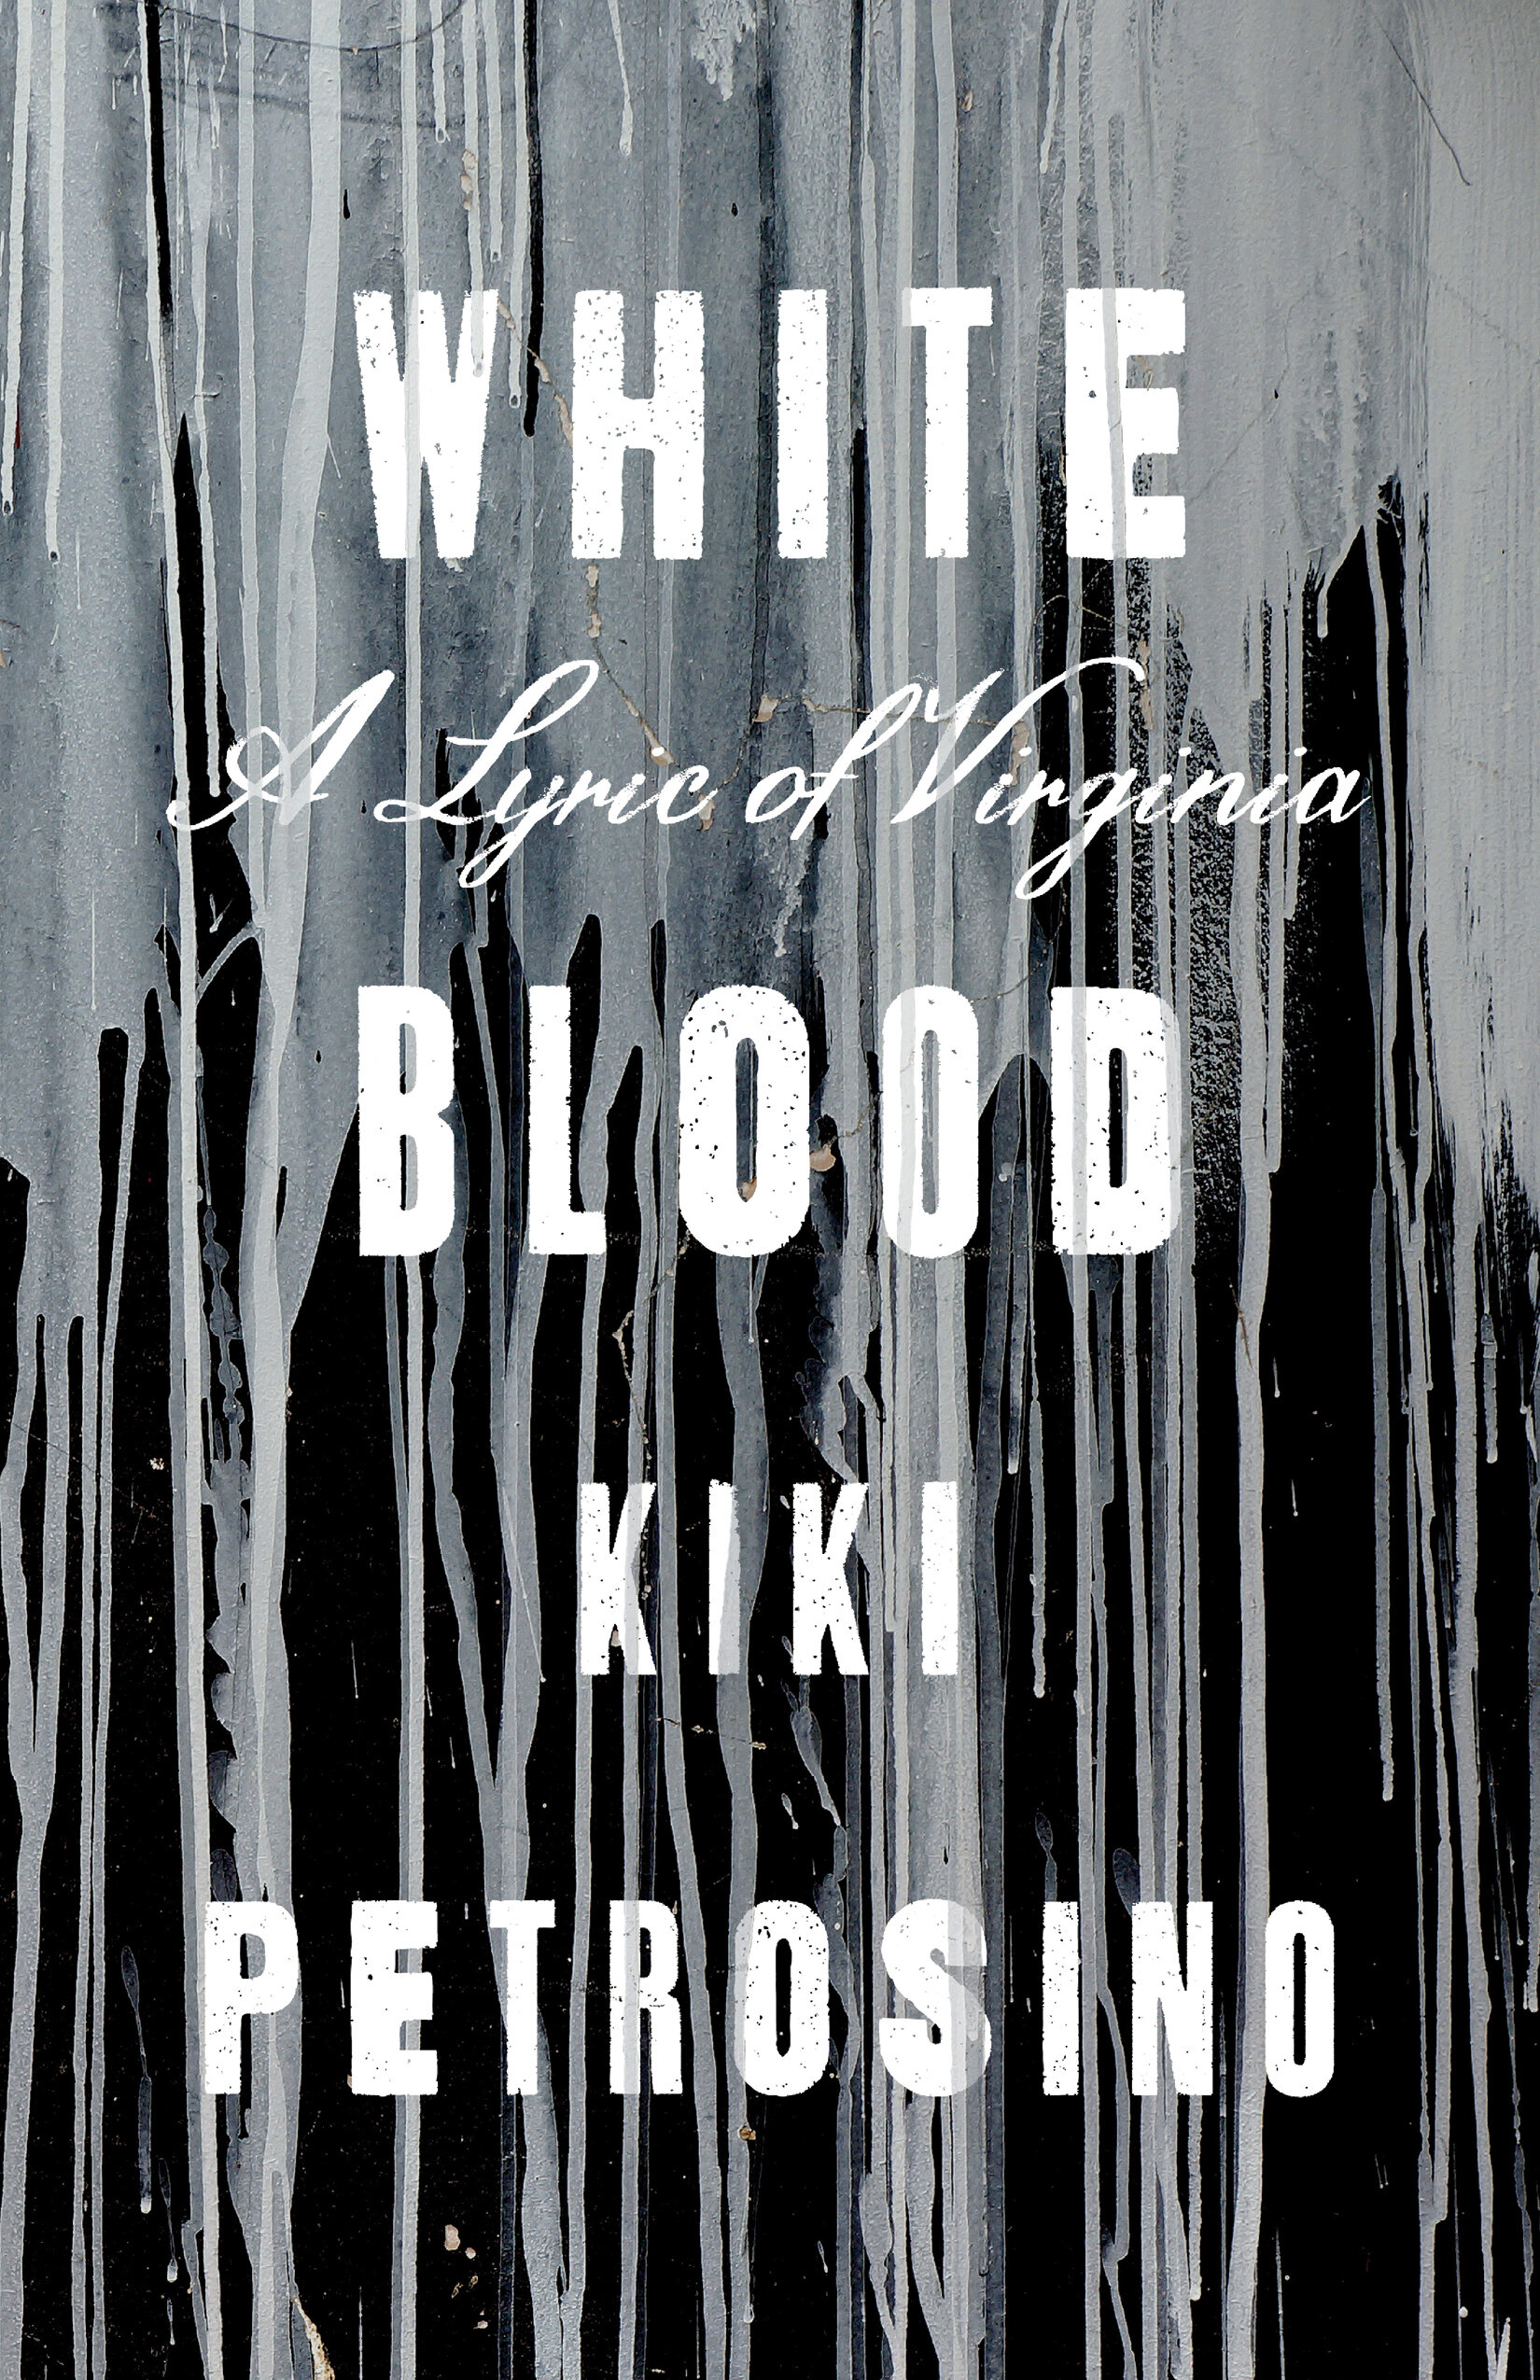 White Blood: A Lyric of Virginia